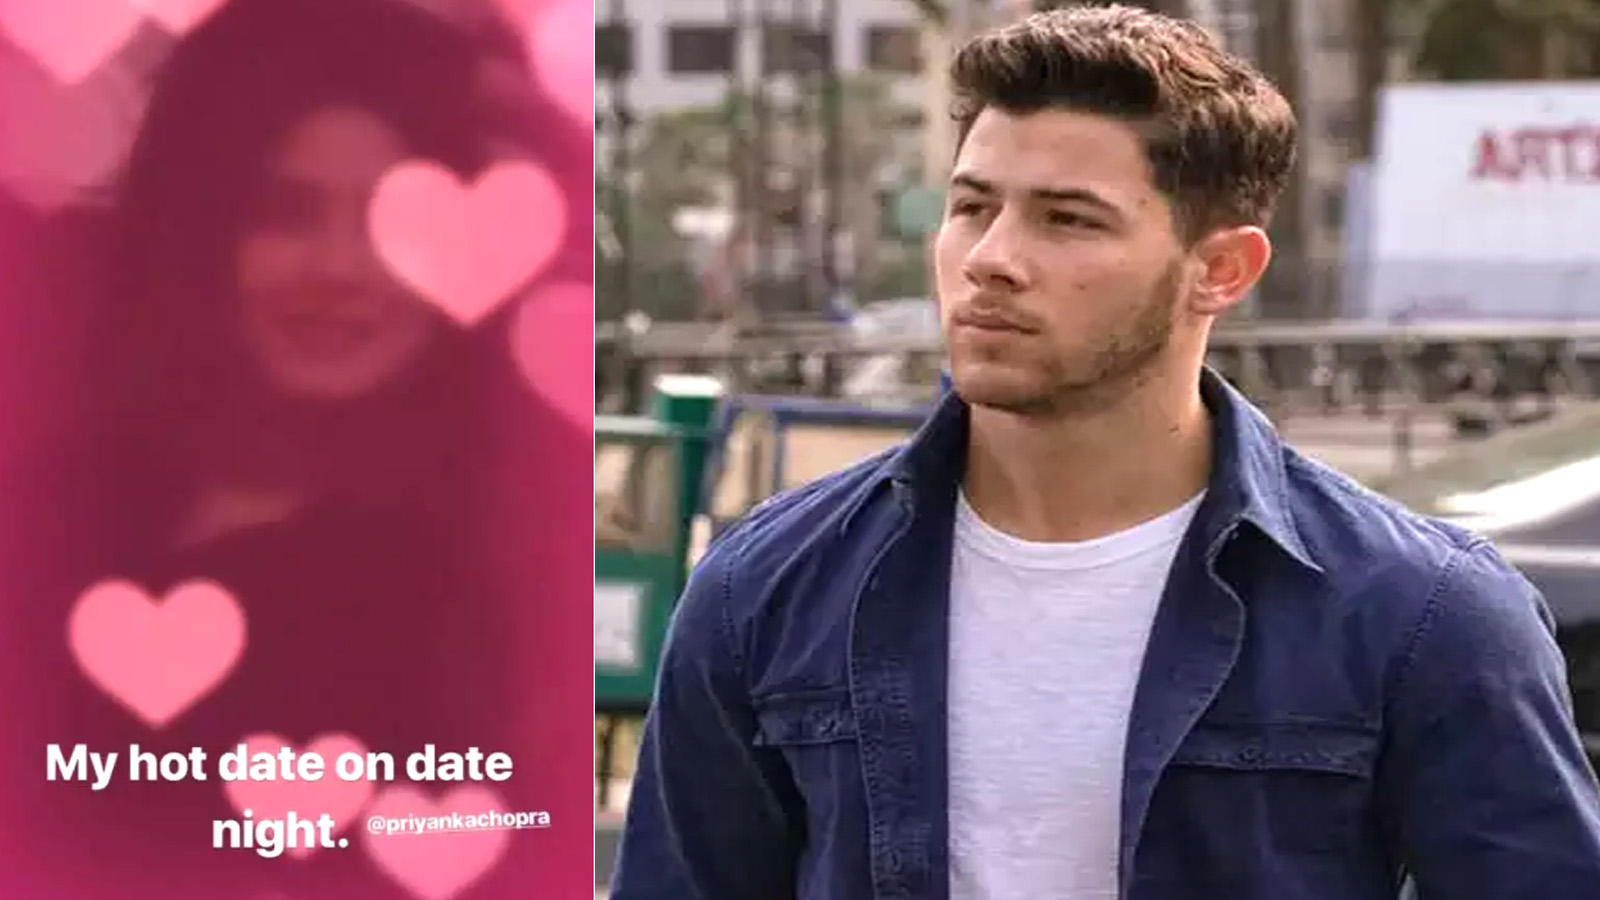 Guess who is Nick Jonas' 'hot date on date night'